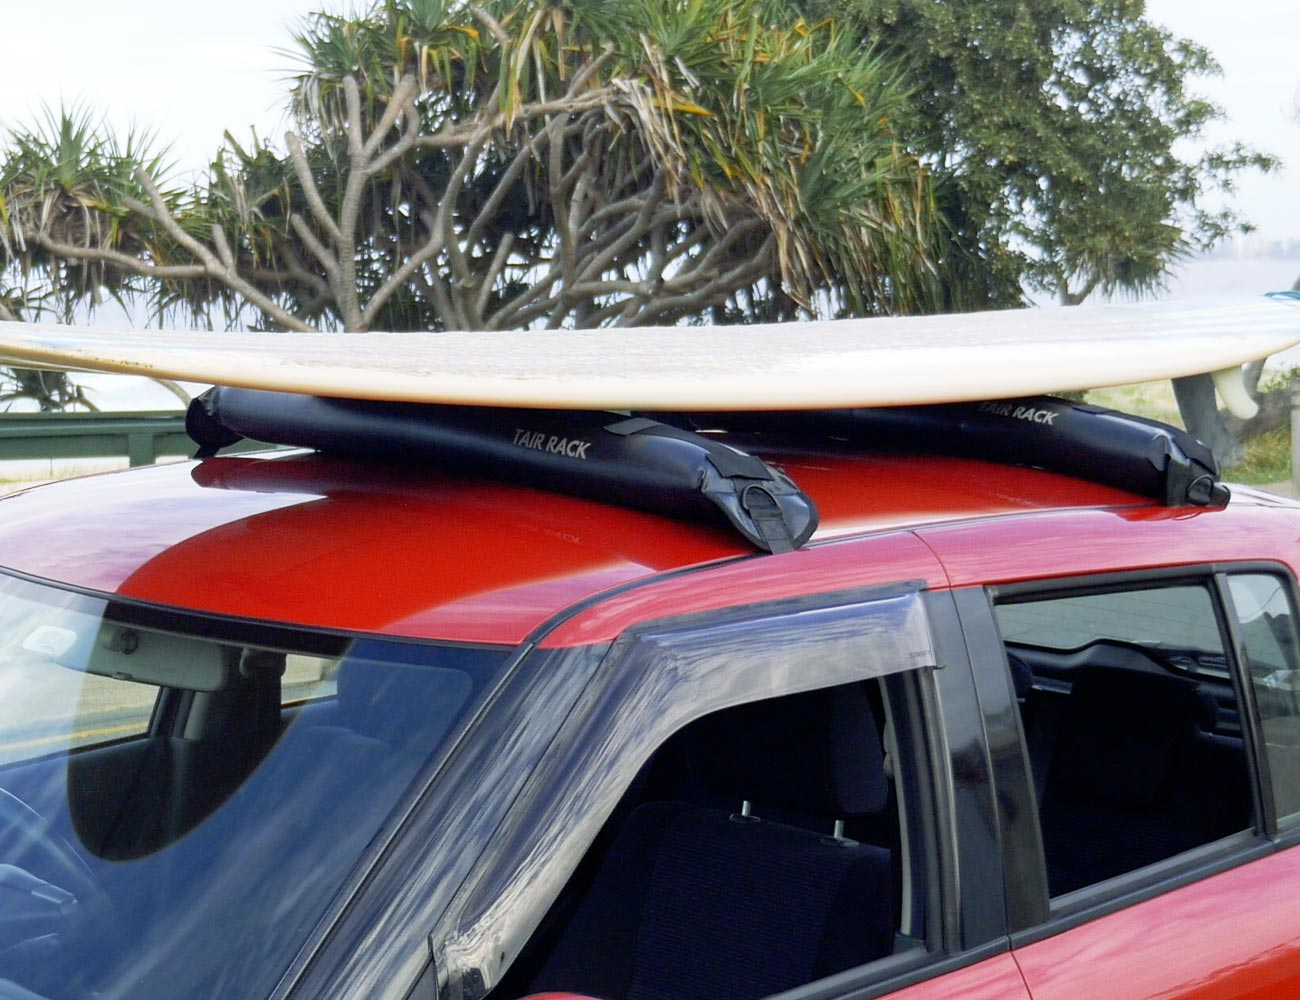 Tair Rack Inflatable Roof Rack